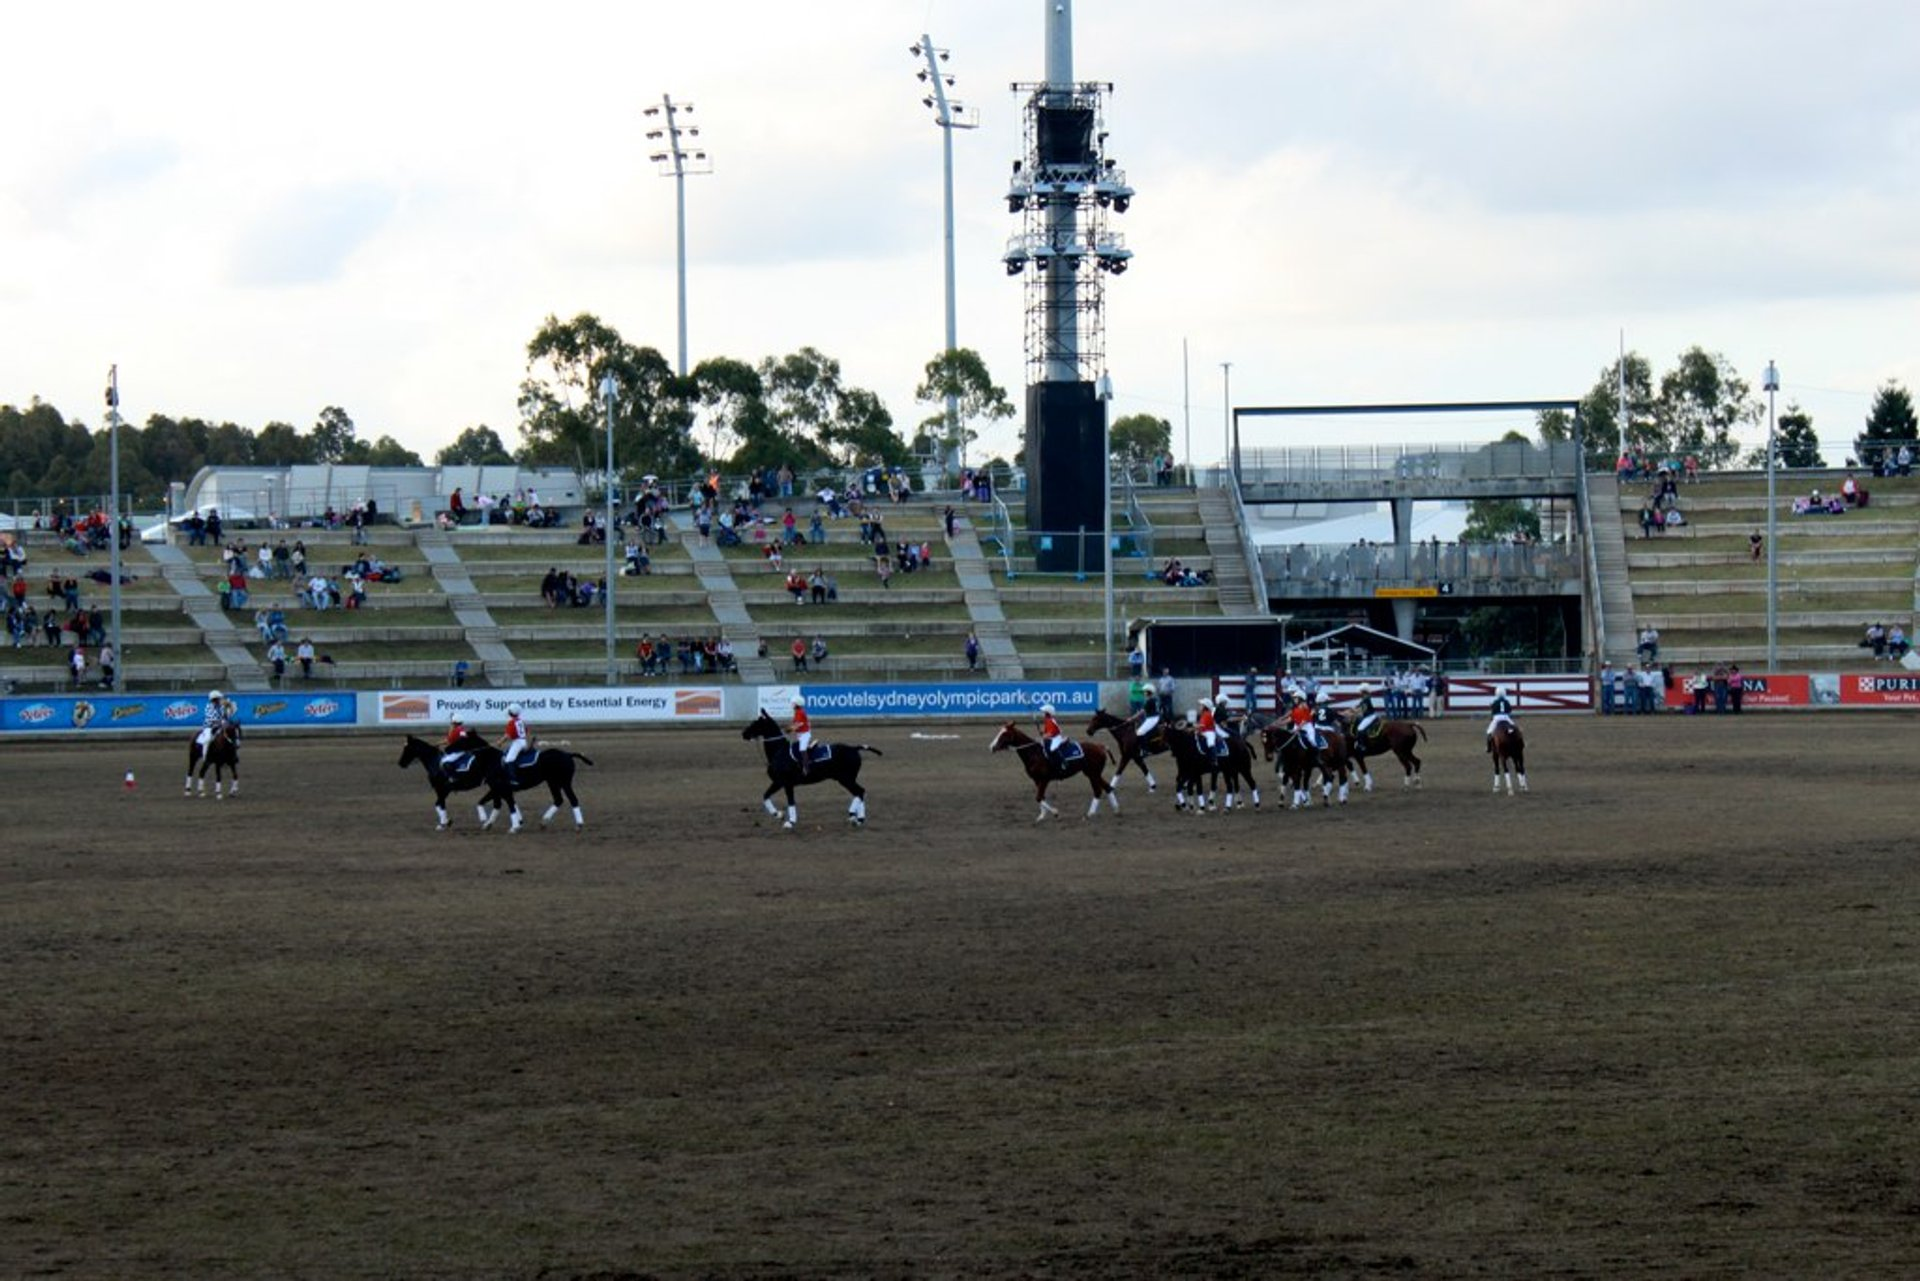 Sydney Easter Show Polo